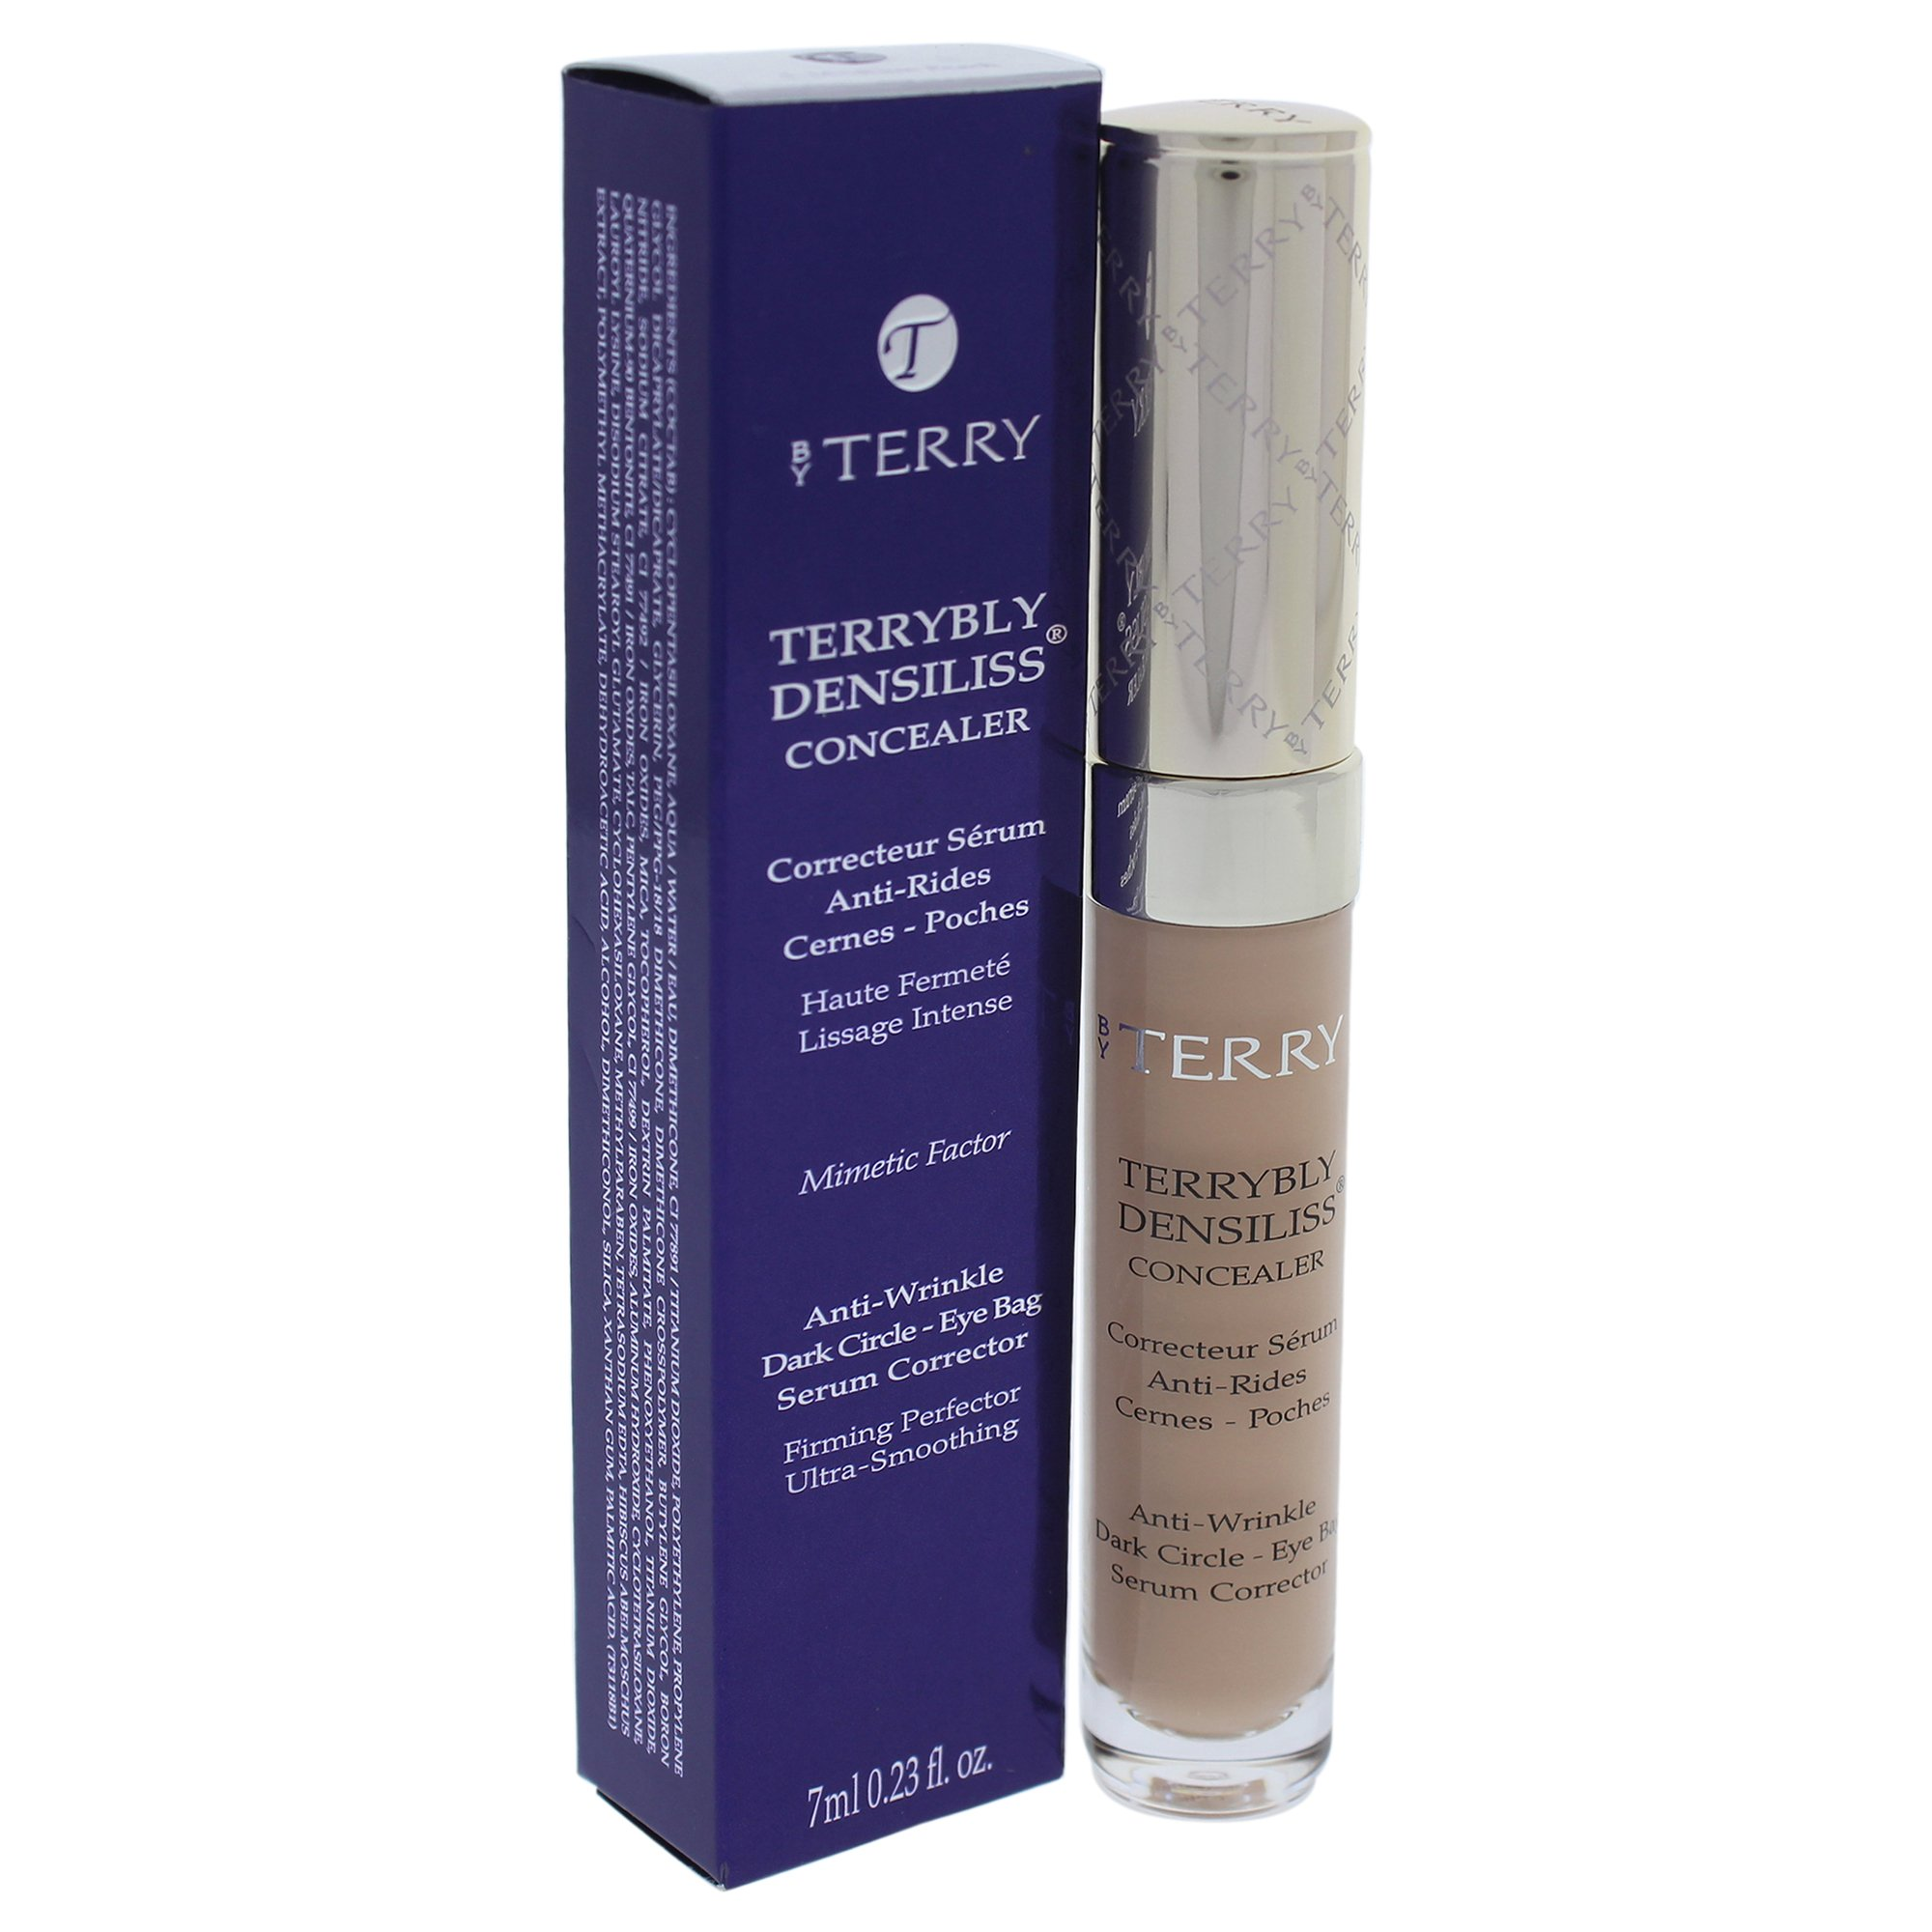 By Terry Terribly Densiliss Concealer - 4 - Medium Peach